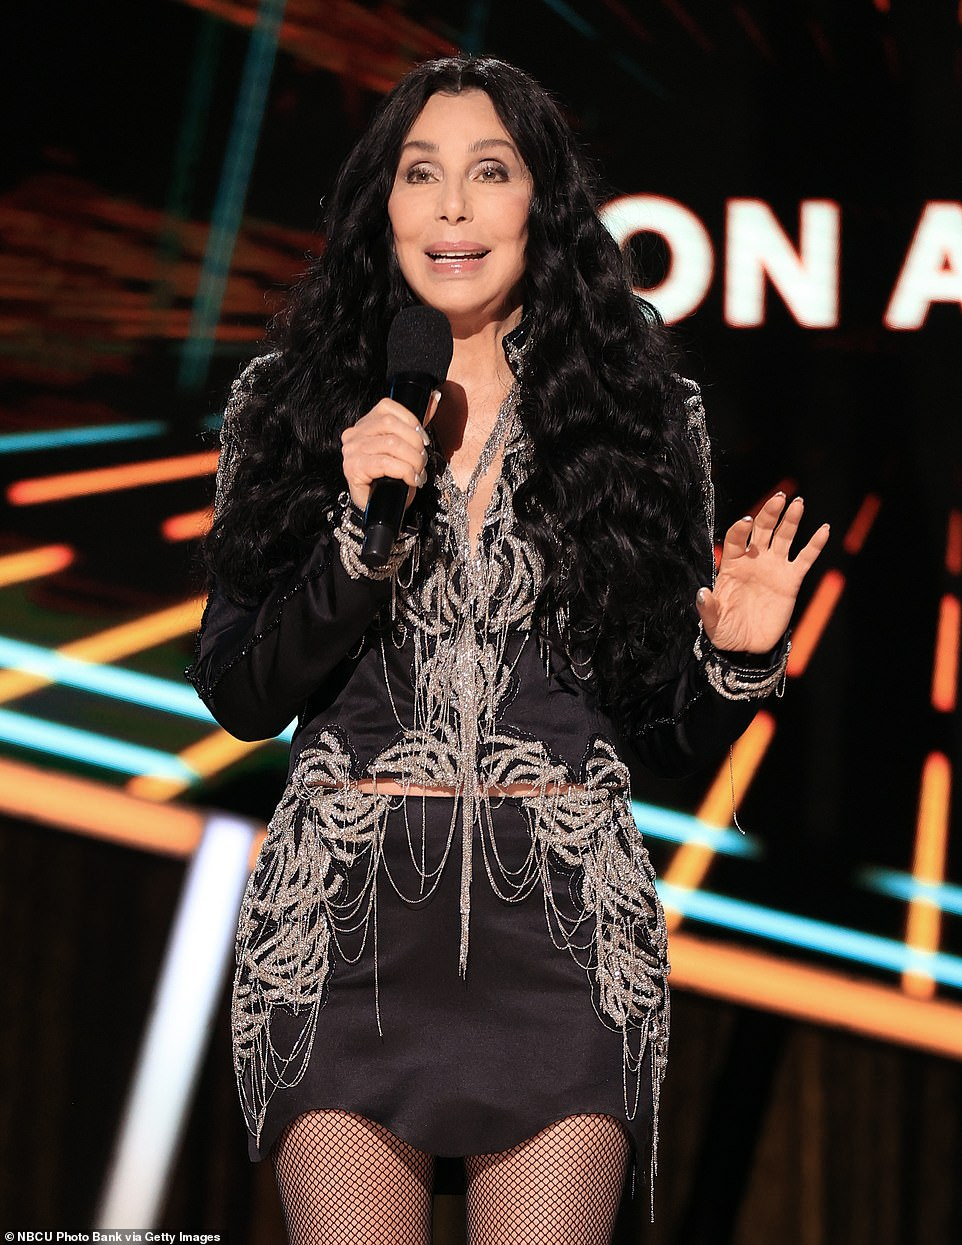 Taking the stage: Cher was proud to present the award to the country superstar